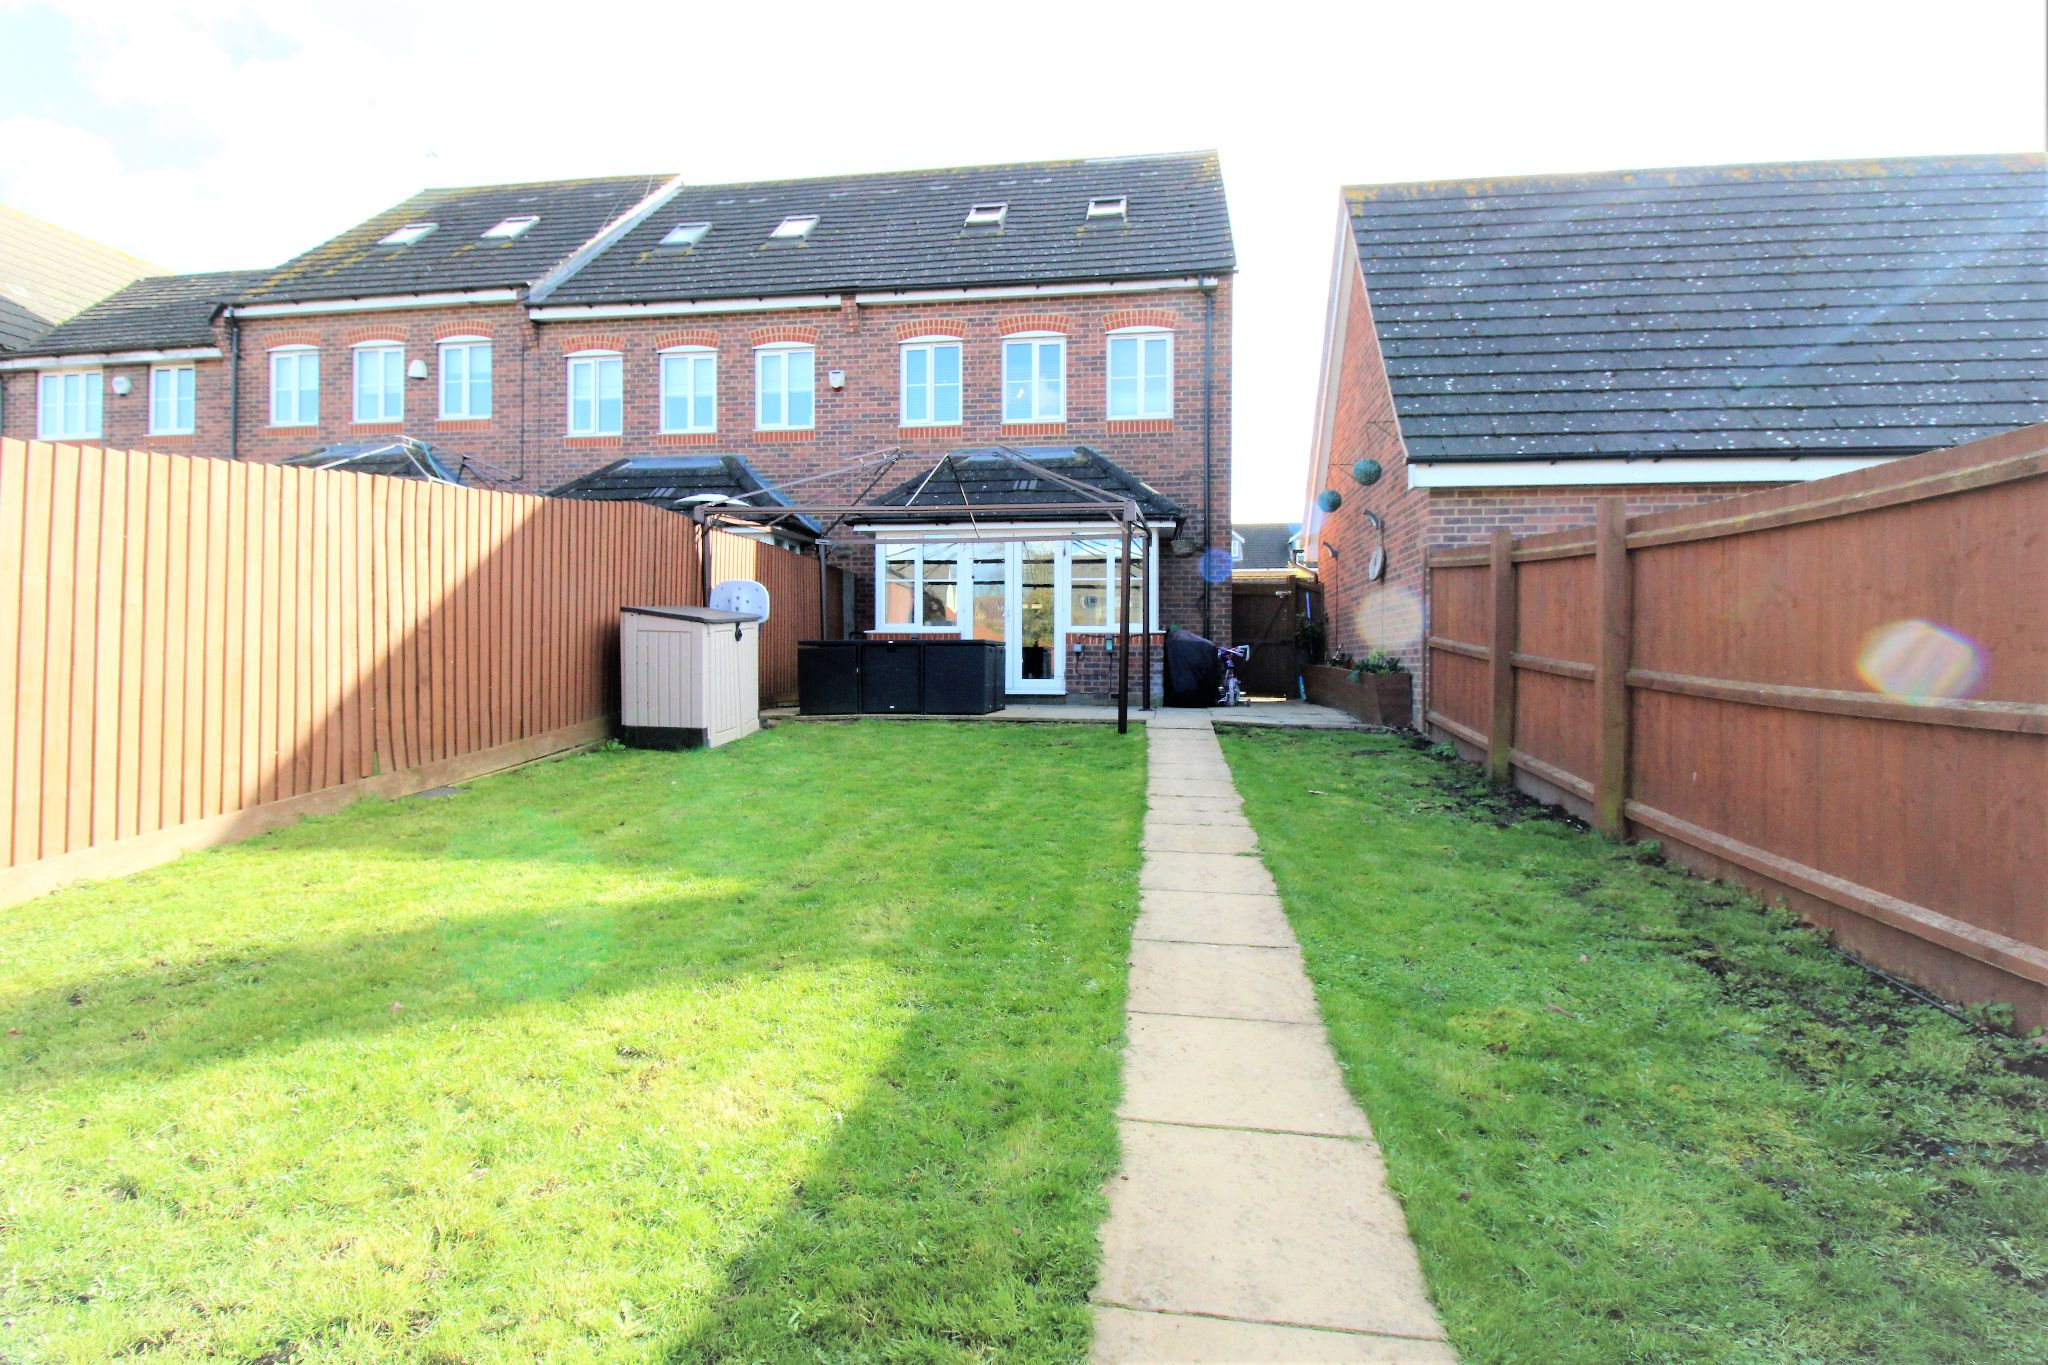 4 Bedroom Semi-detached House For Sale - Photograph 18